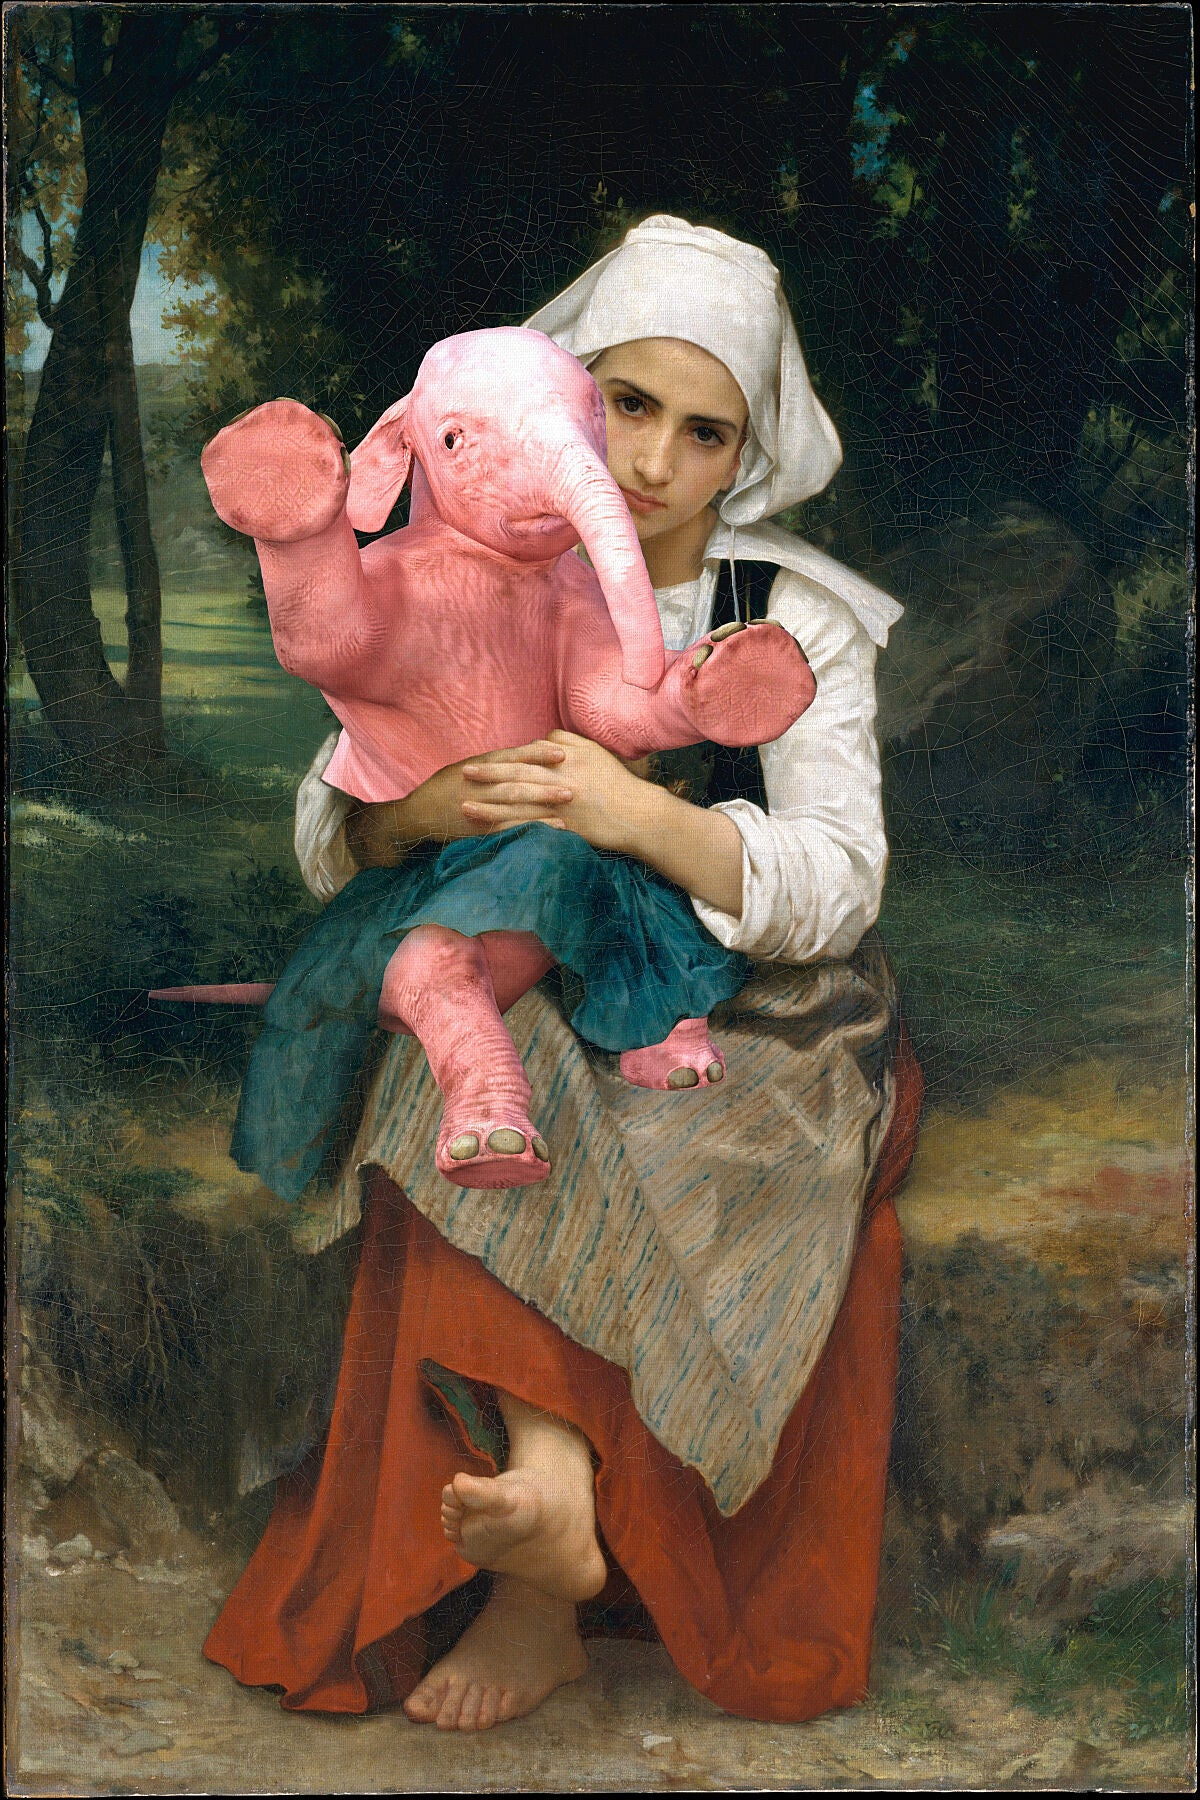 Breton Sister and Her Weird Brother_William Bouguereau